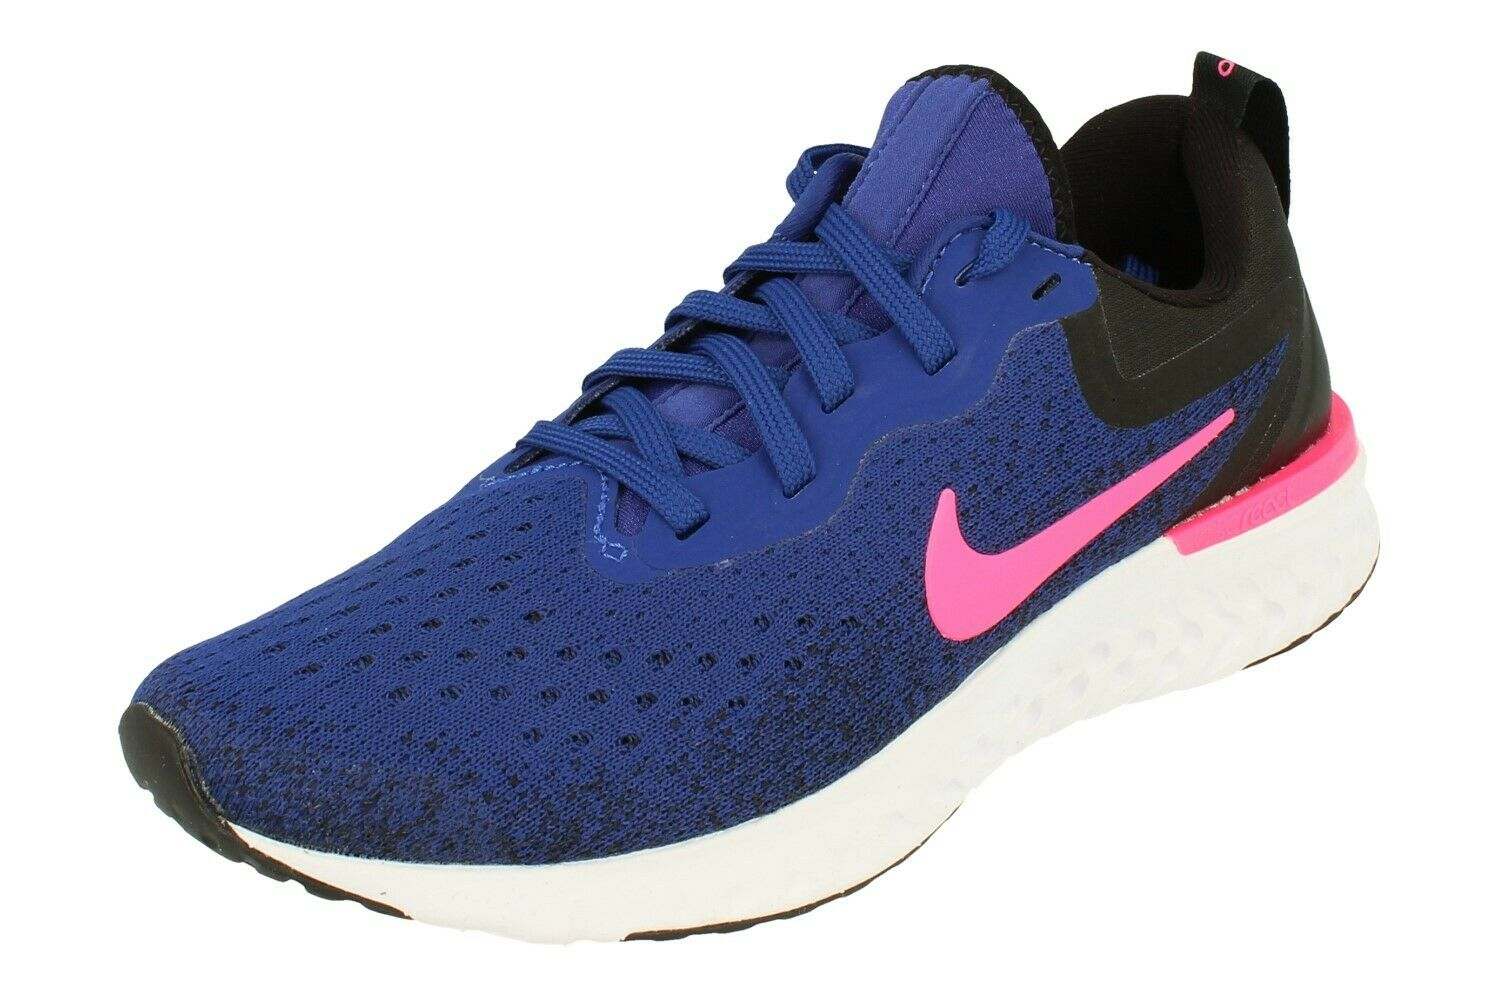 Nike Womens Odyssey React Running Trainers Ao9820 Sneakers shoes 403